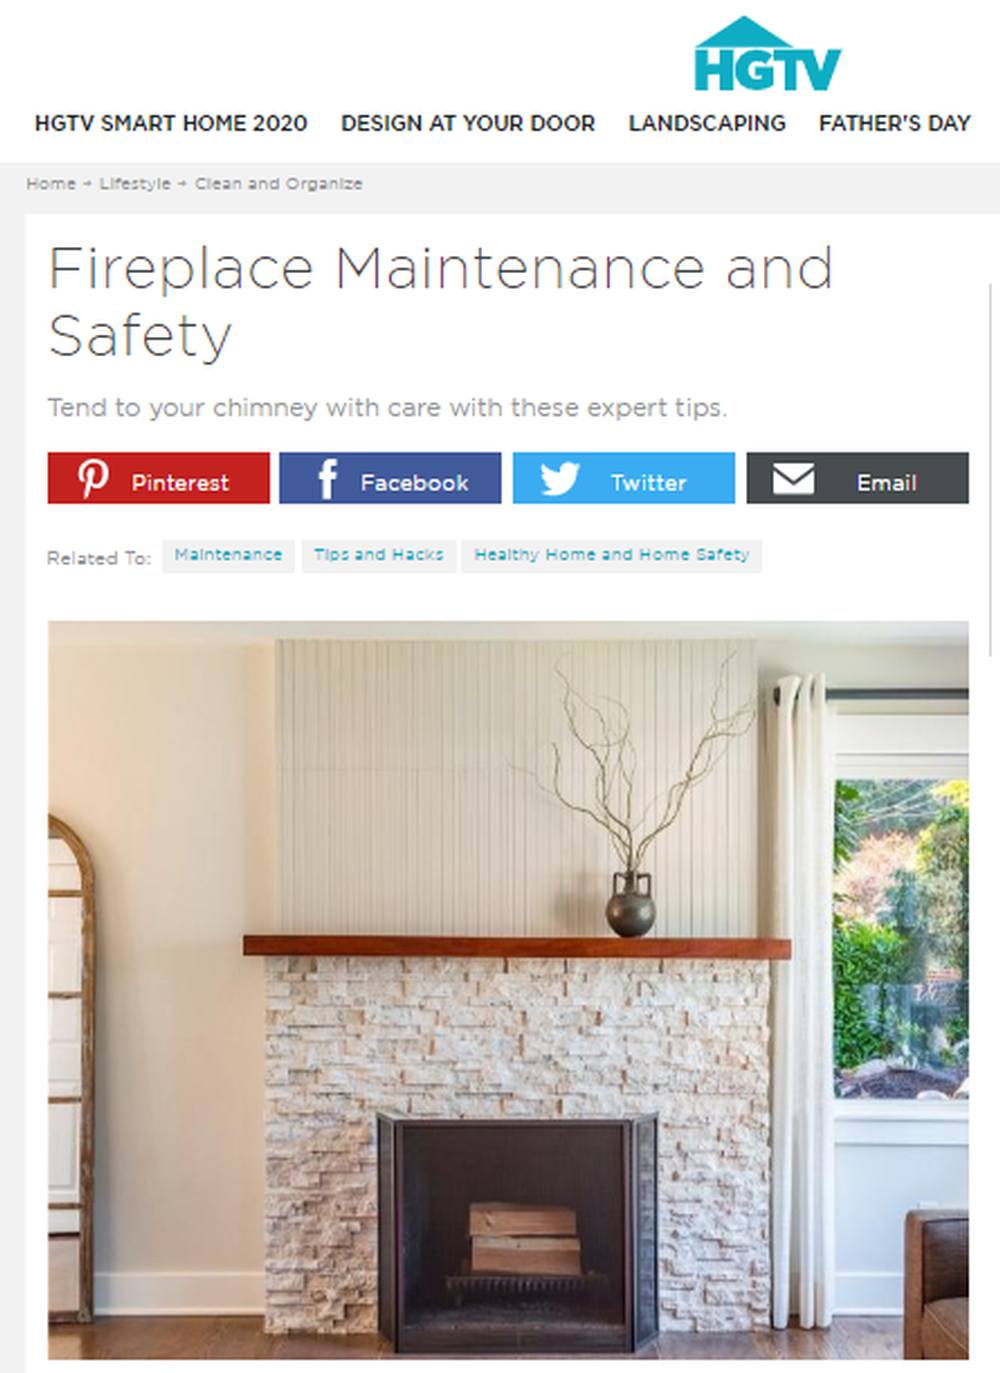 Fireplace_Maintenance_and_Safety_HGTV.png